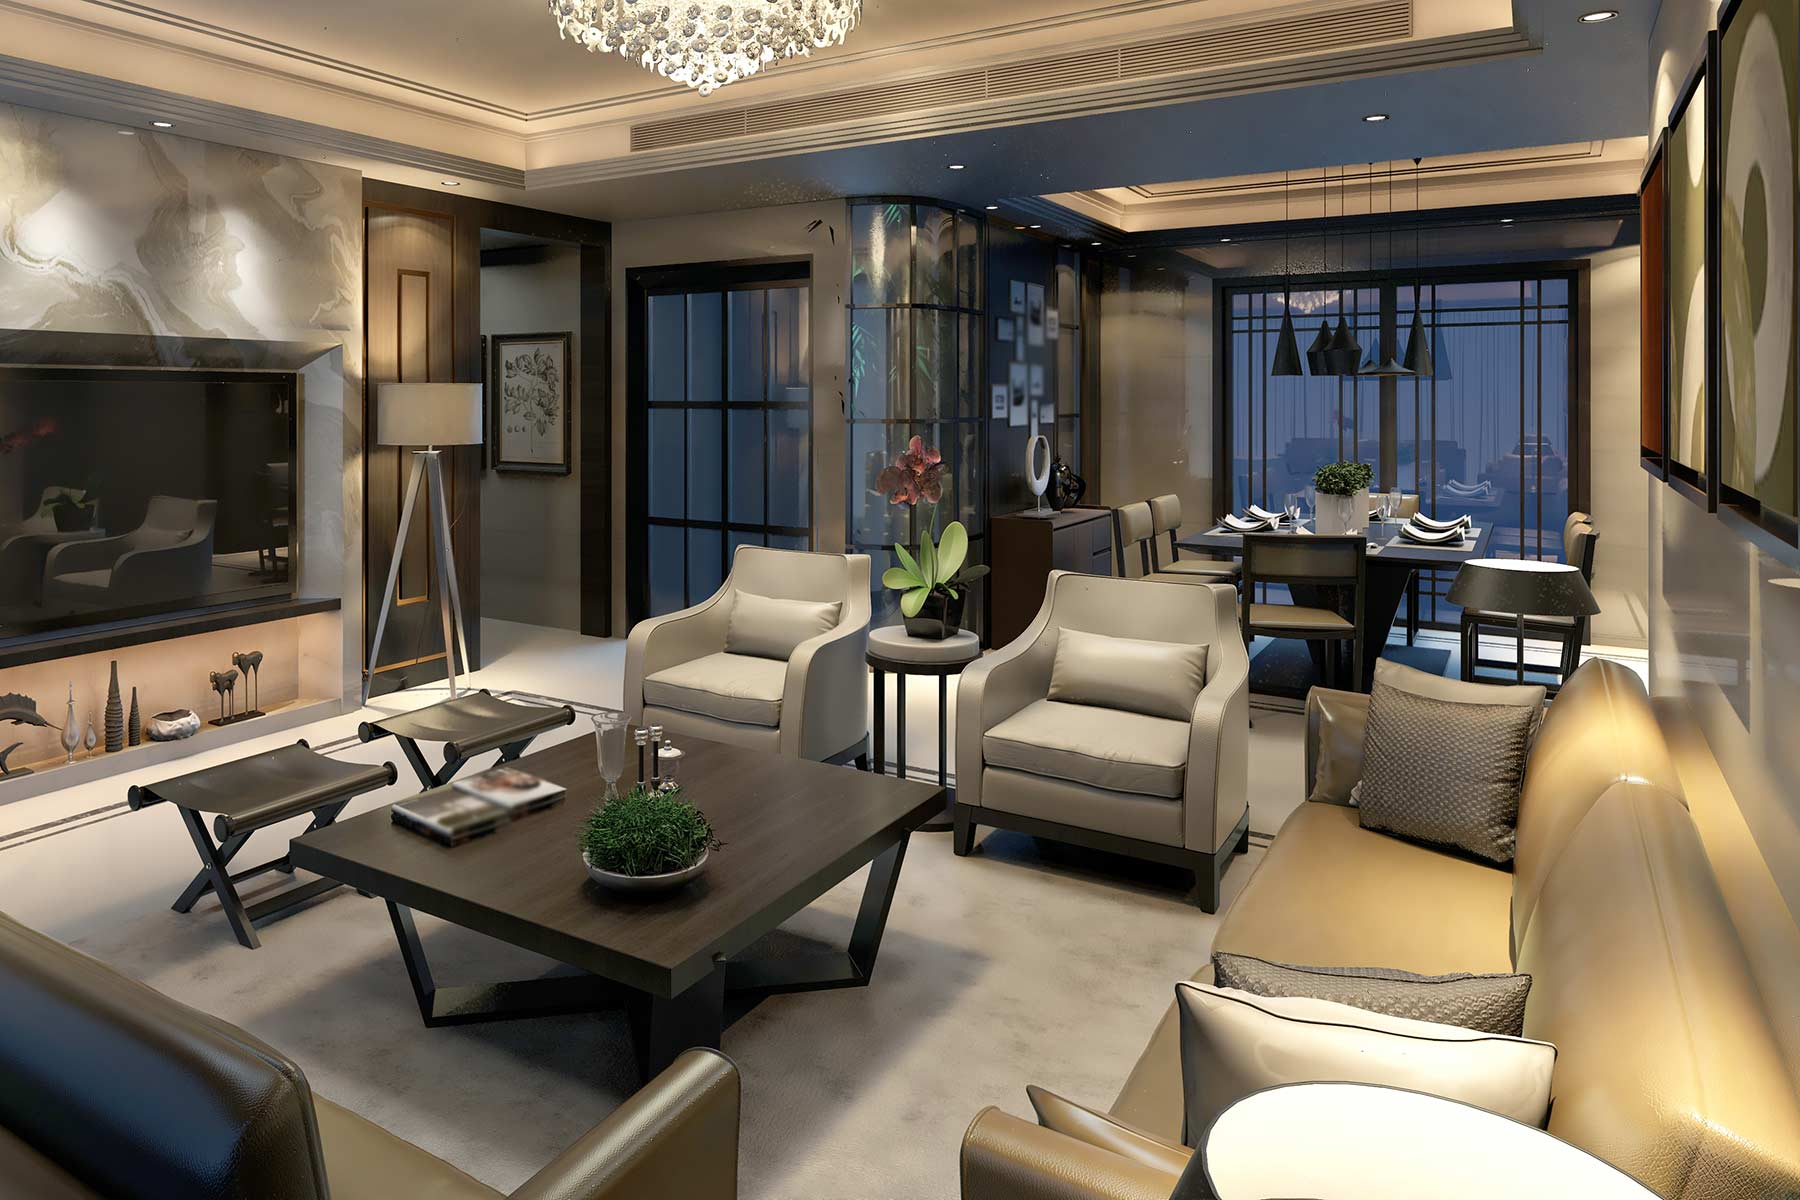 A luxury apartment in a New York CIty high rise